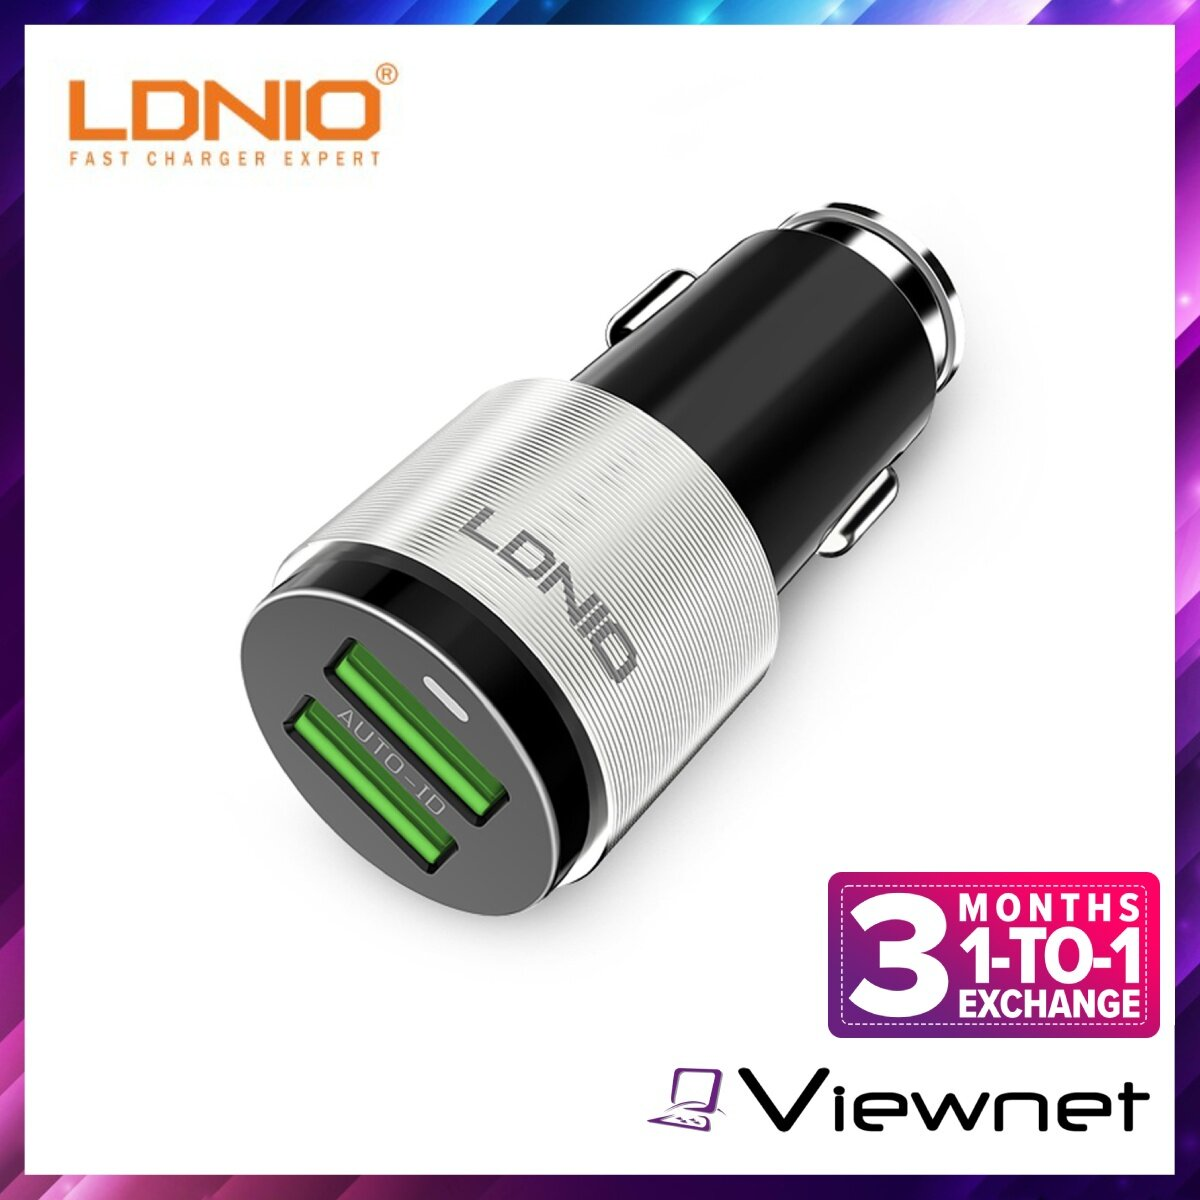 Ldnio C403 In-Car Combo 4.2A Auto ID Dual-USB QC3.0 Car Charger Input DC12V-24V, Output DC5V 18W